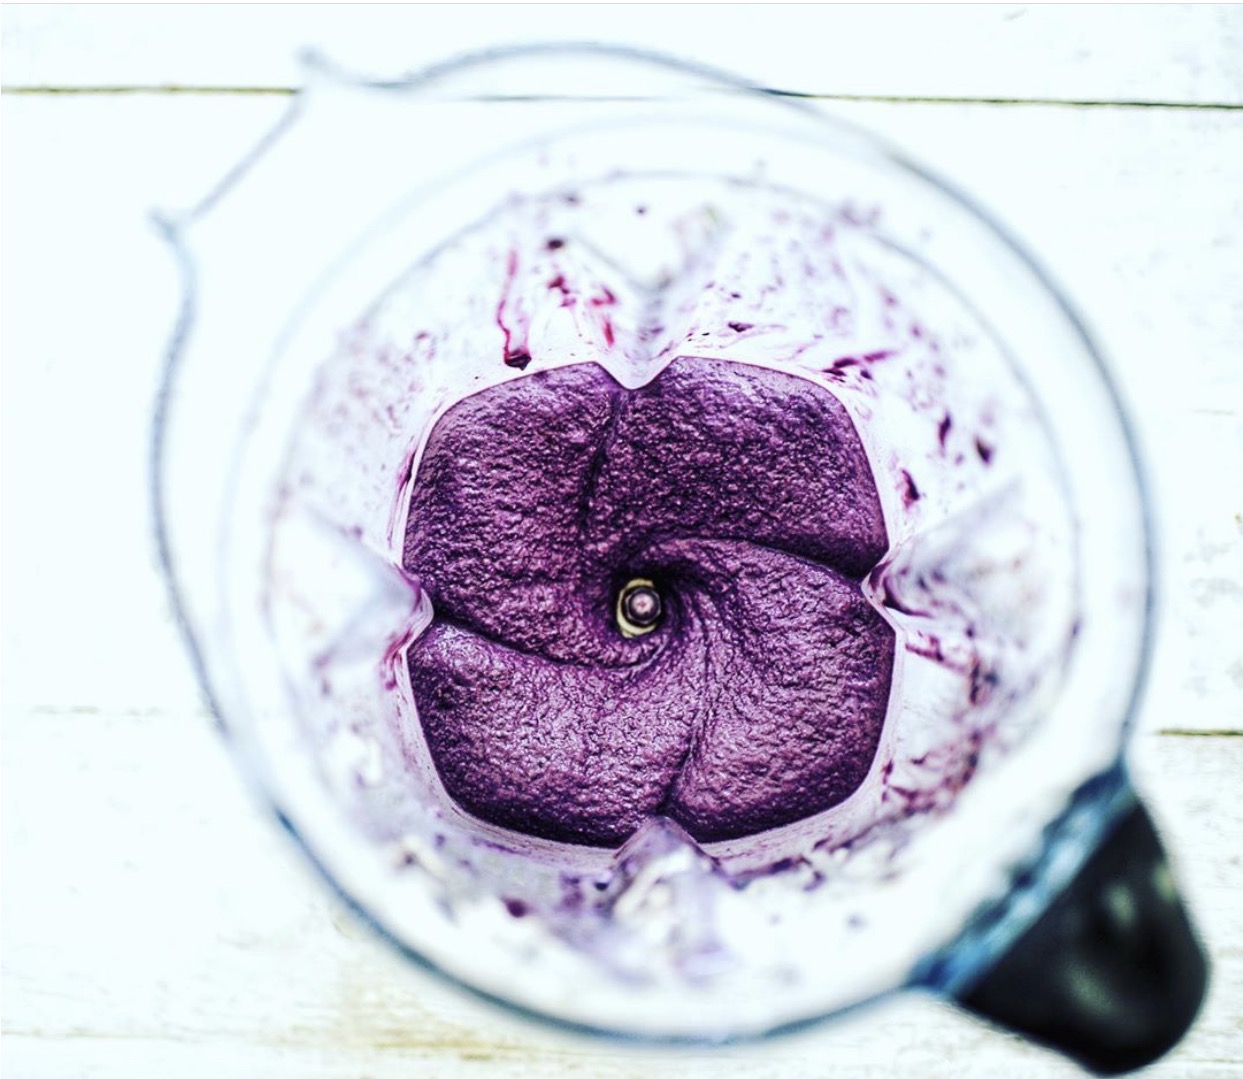 Blending the ingredients in the Vitamix. Photo credit @terianncarty.